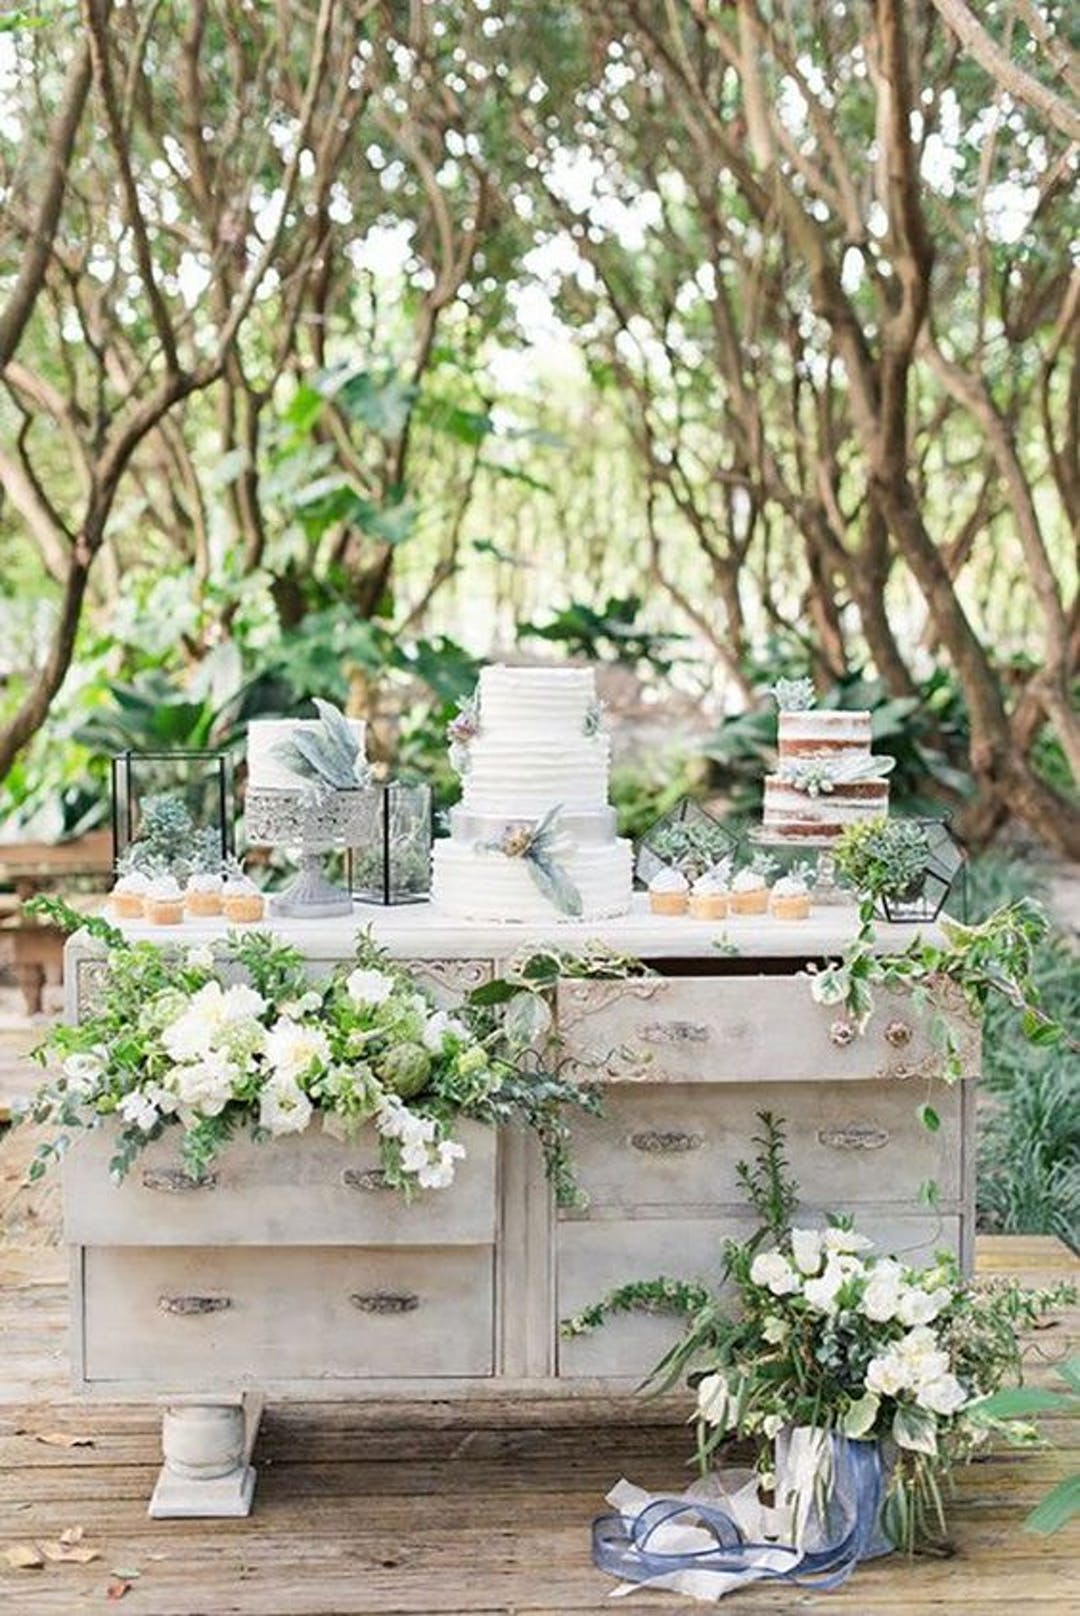 Gorgeous cake table at an outdoor wedding